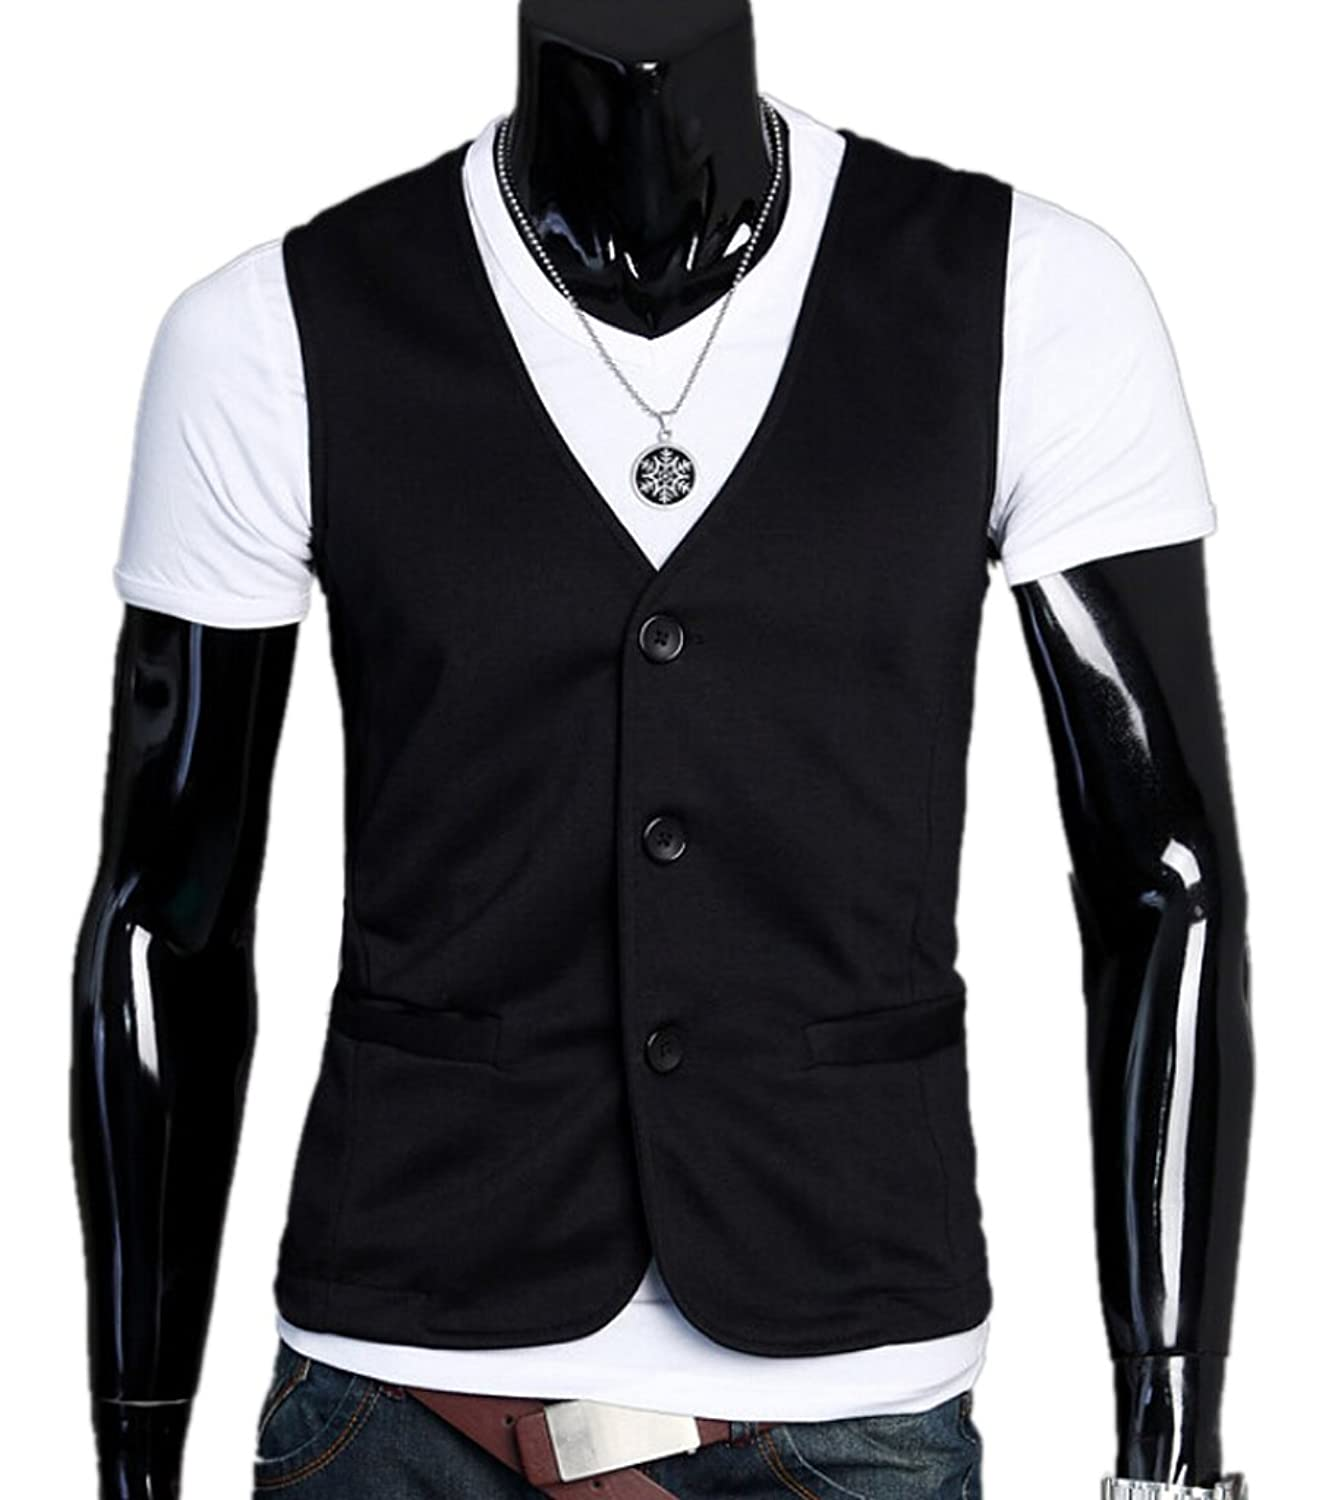 XTX Men's Slim Fit Casual Dress Vest Suit Waistcoat Jacket Coats safety high visibility reflection vest waistcoat outdoor running cycling vest belt tapes reflective knitted waistcoat gilet